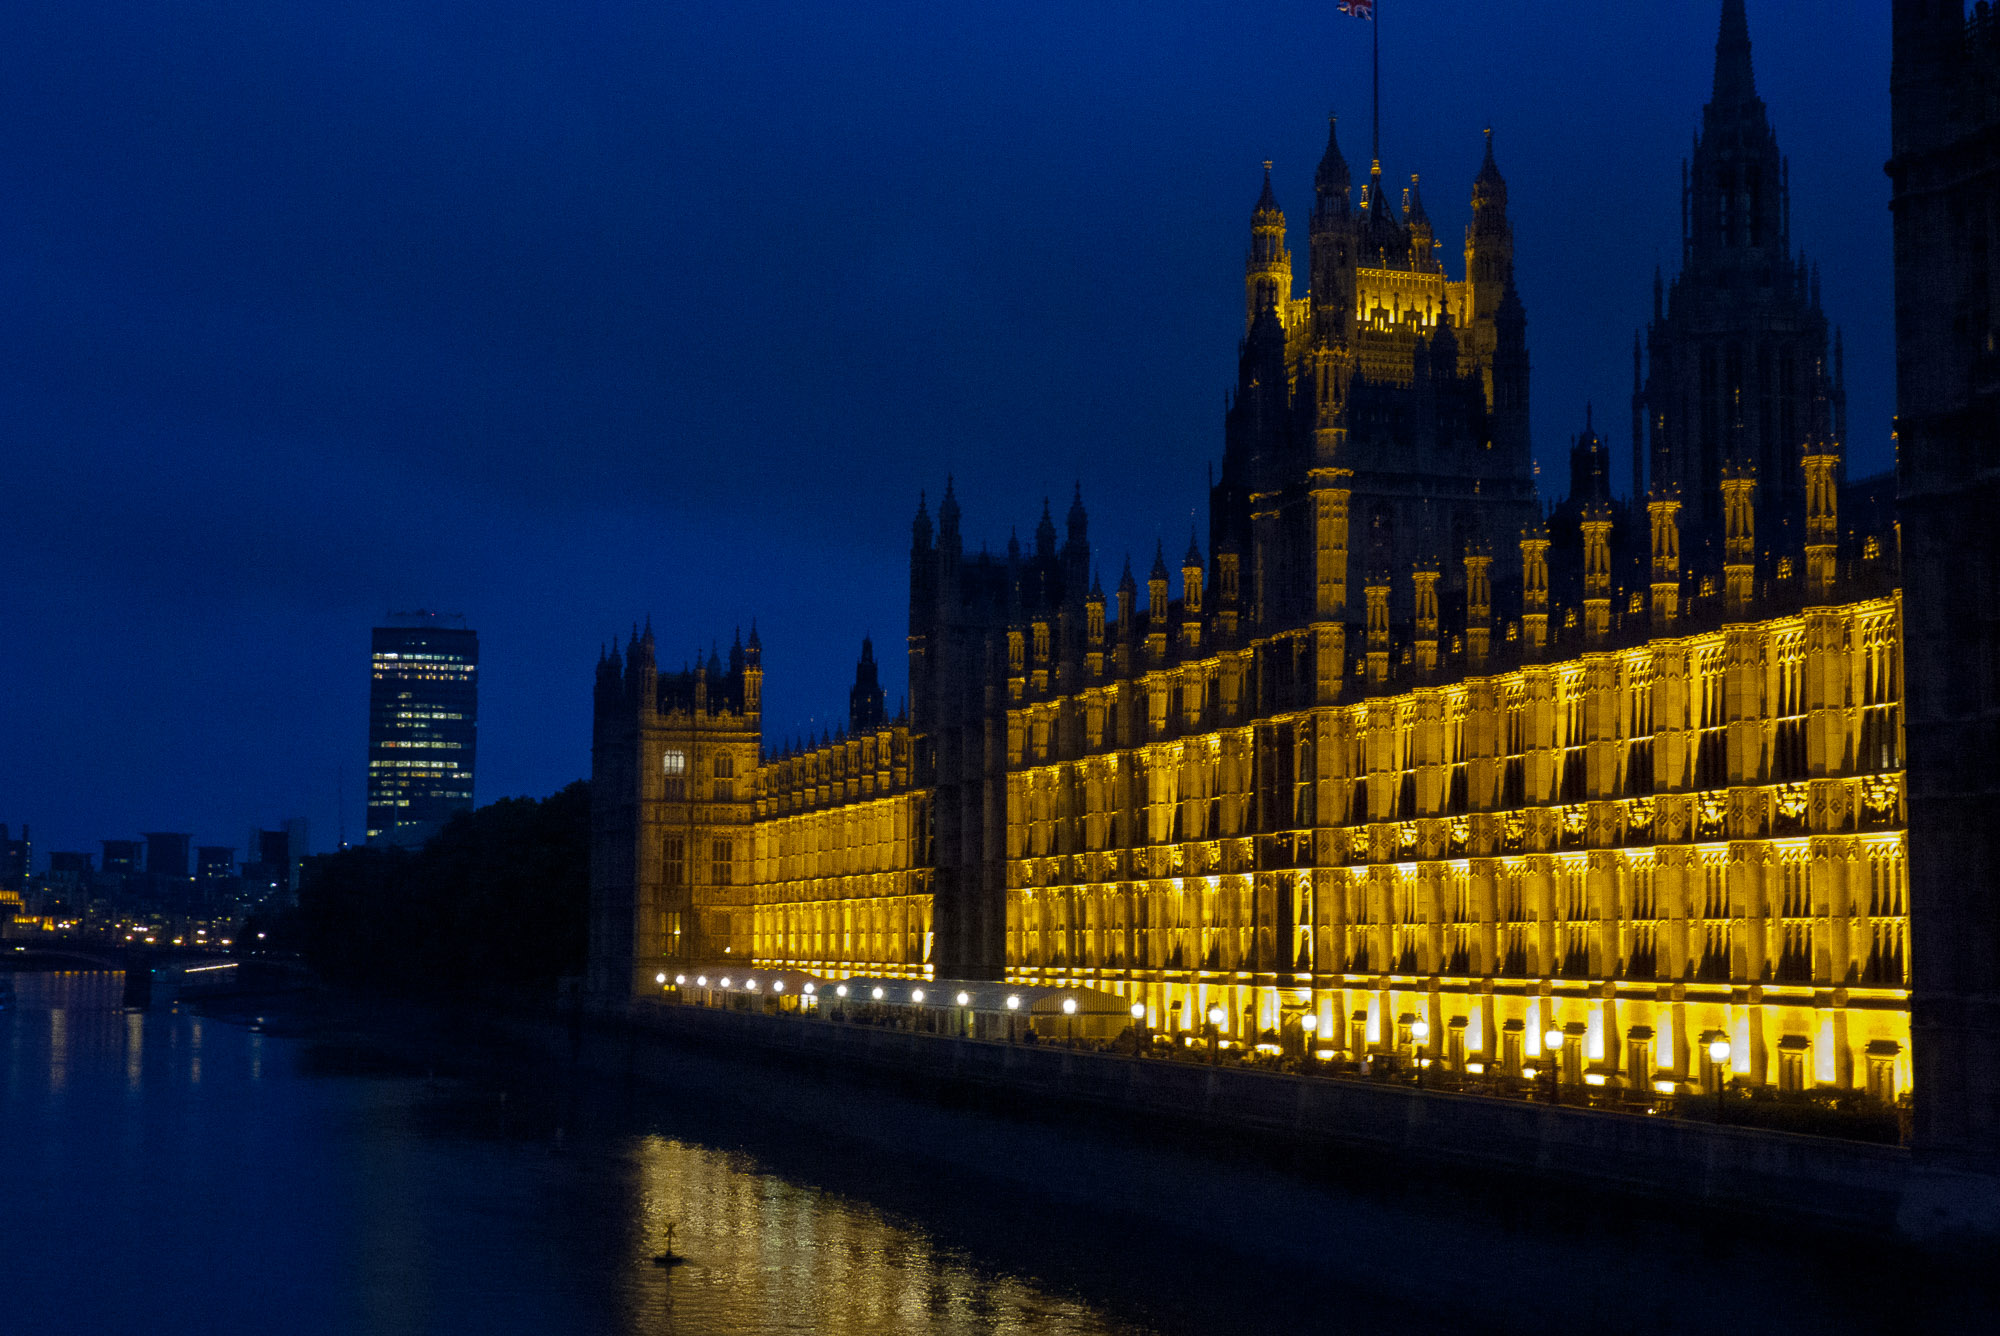 Houses of Parliament IV